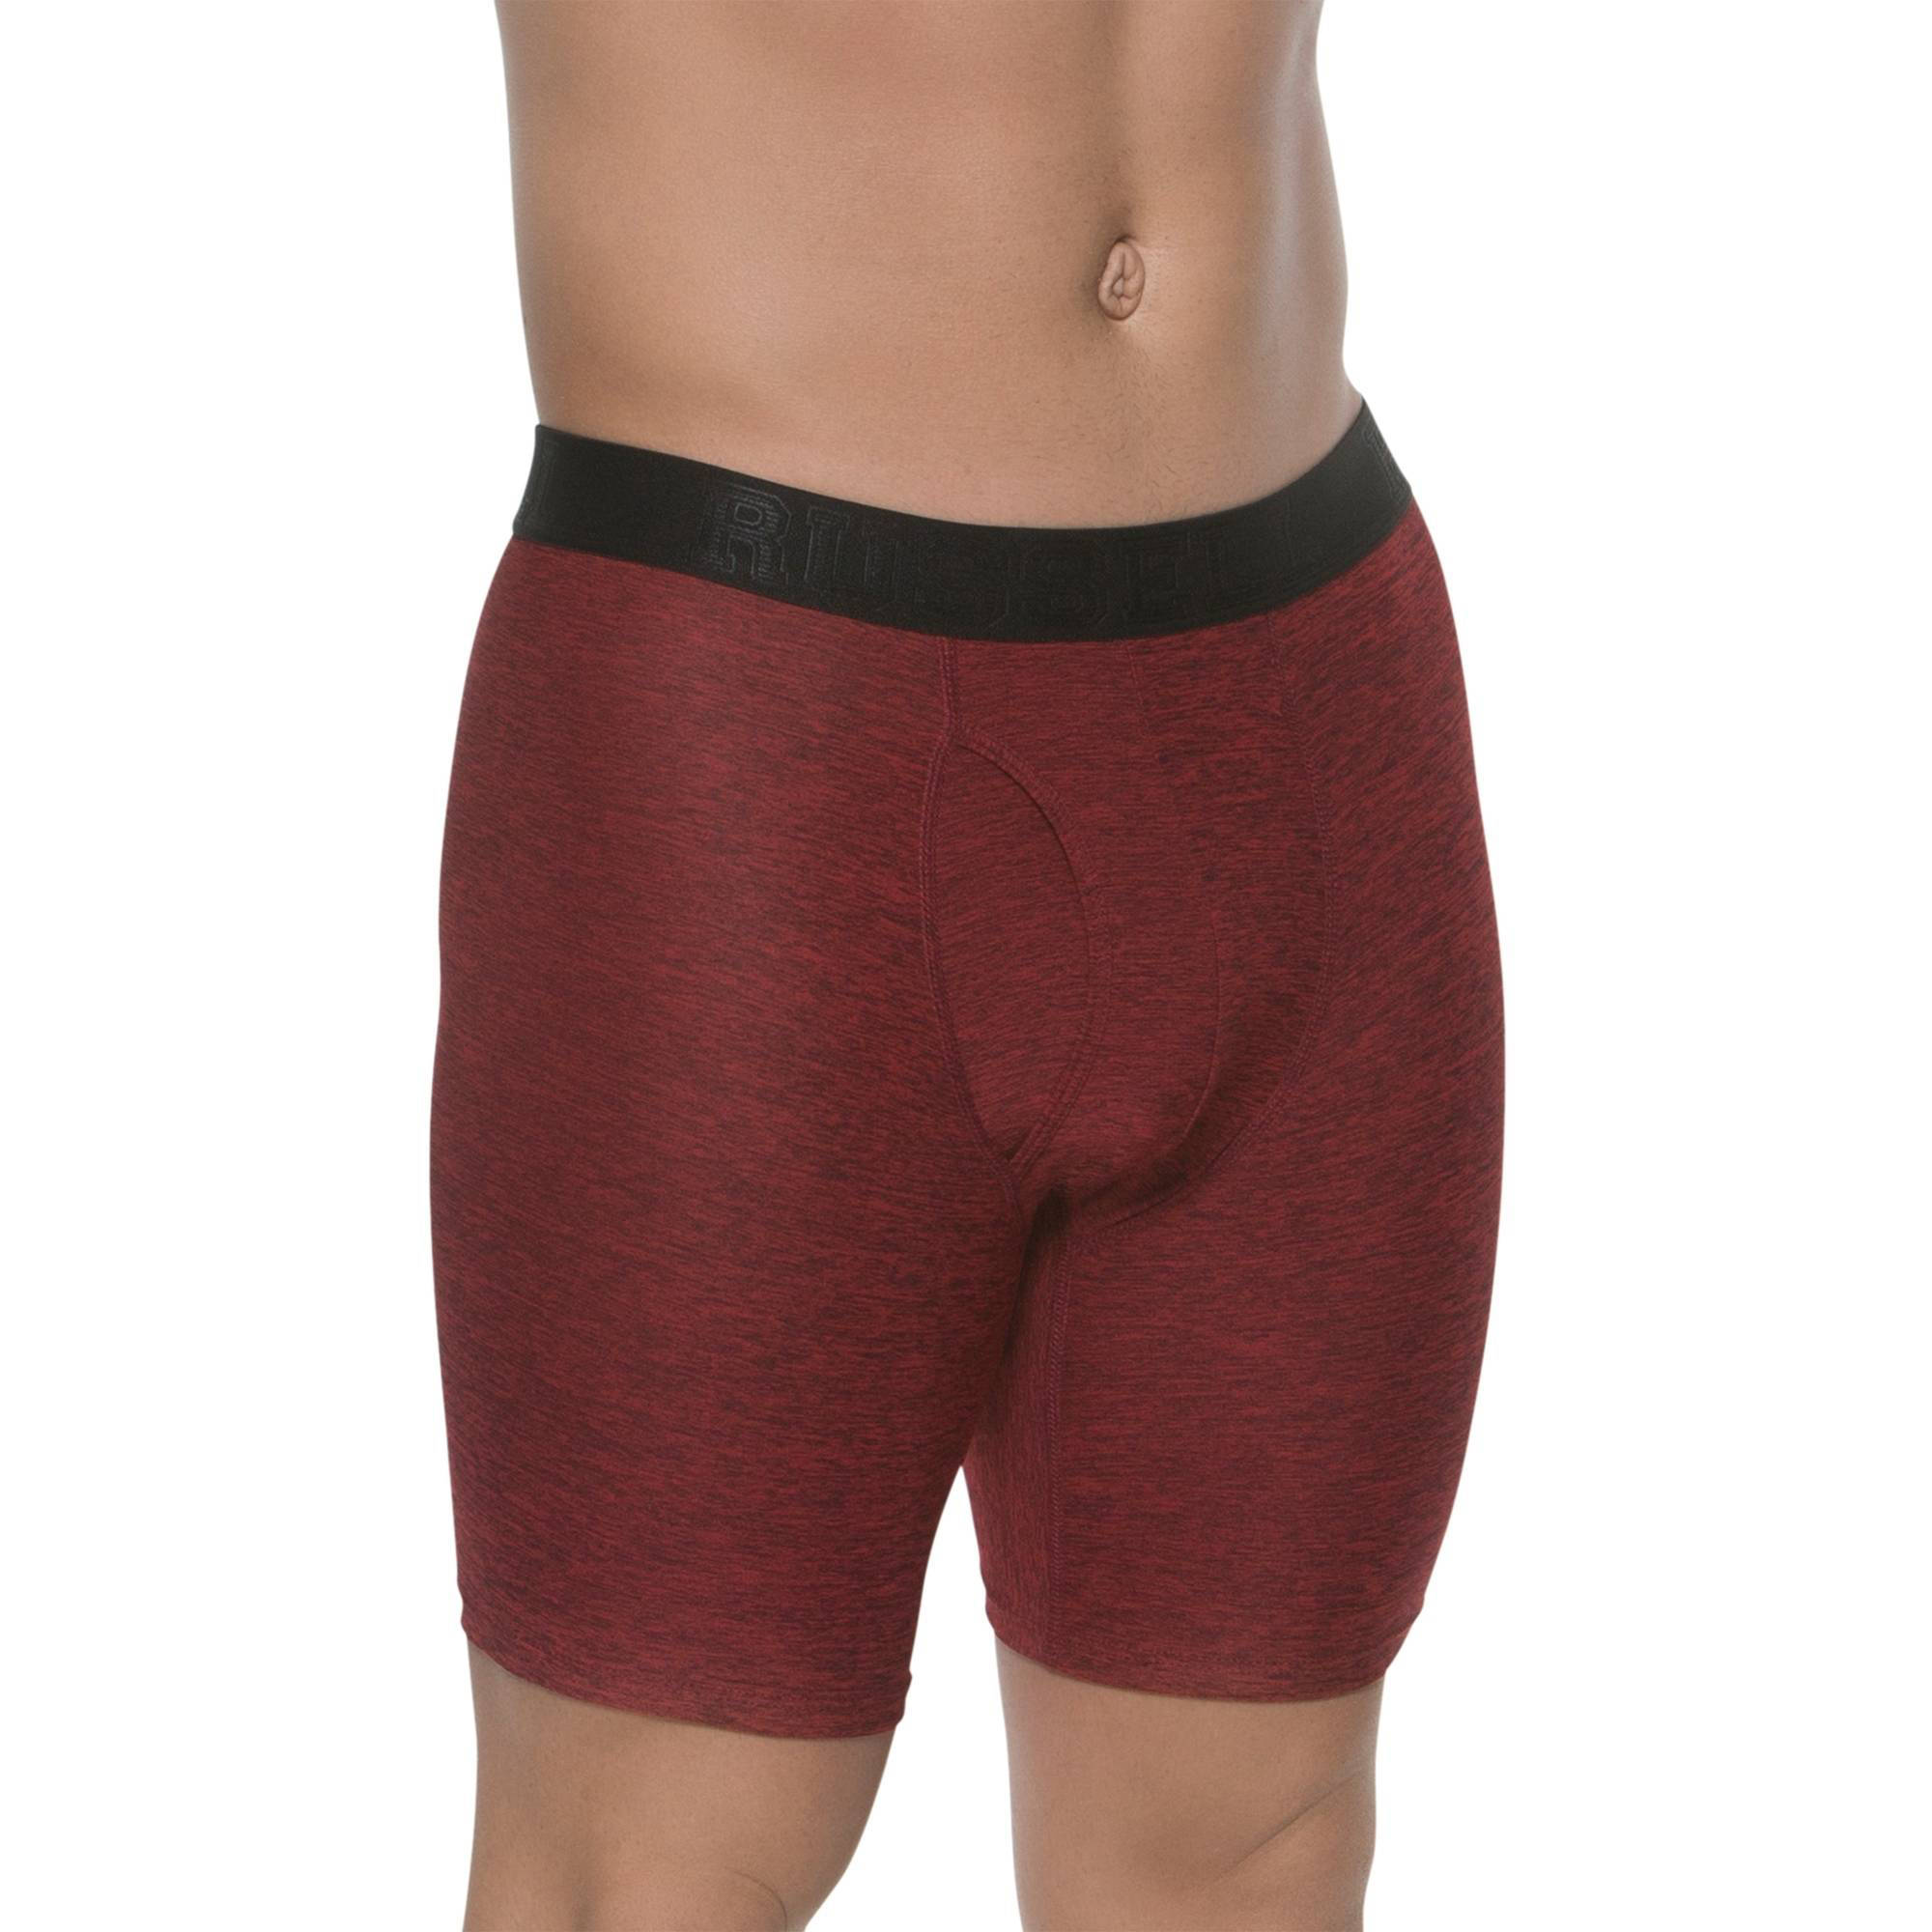 Russell Big Men's FRESHFORCE Perfomance Boxer Brief, 2XL by Generic